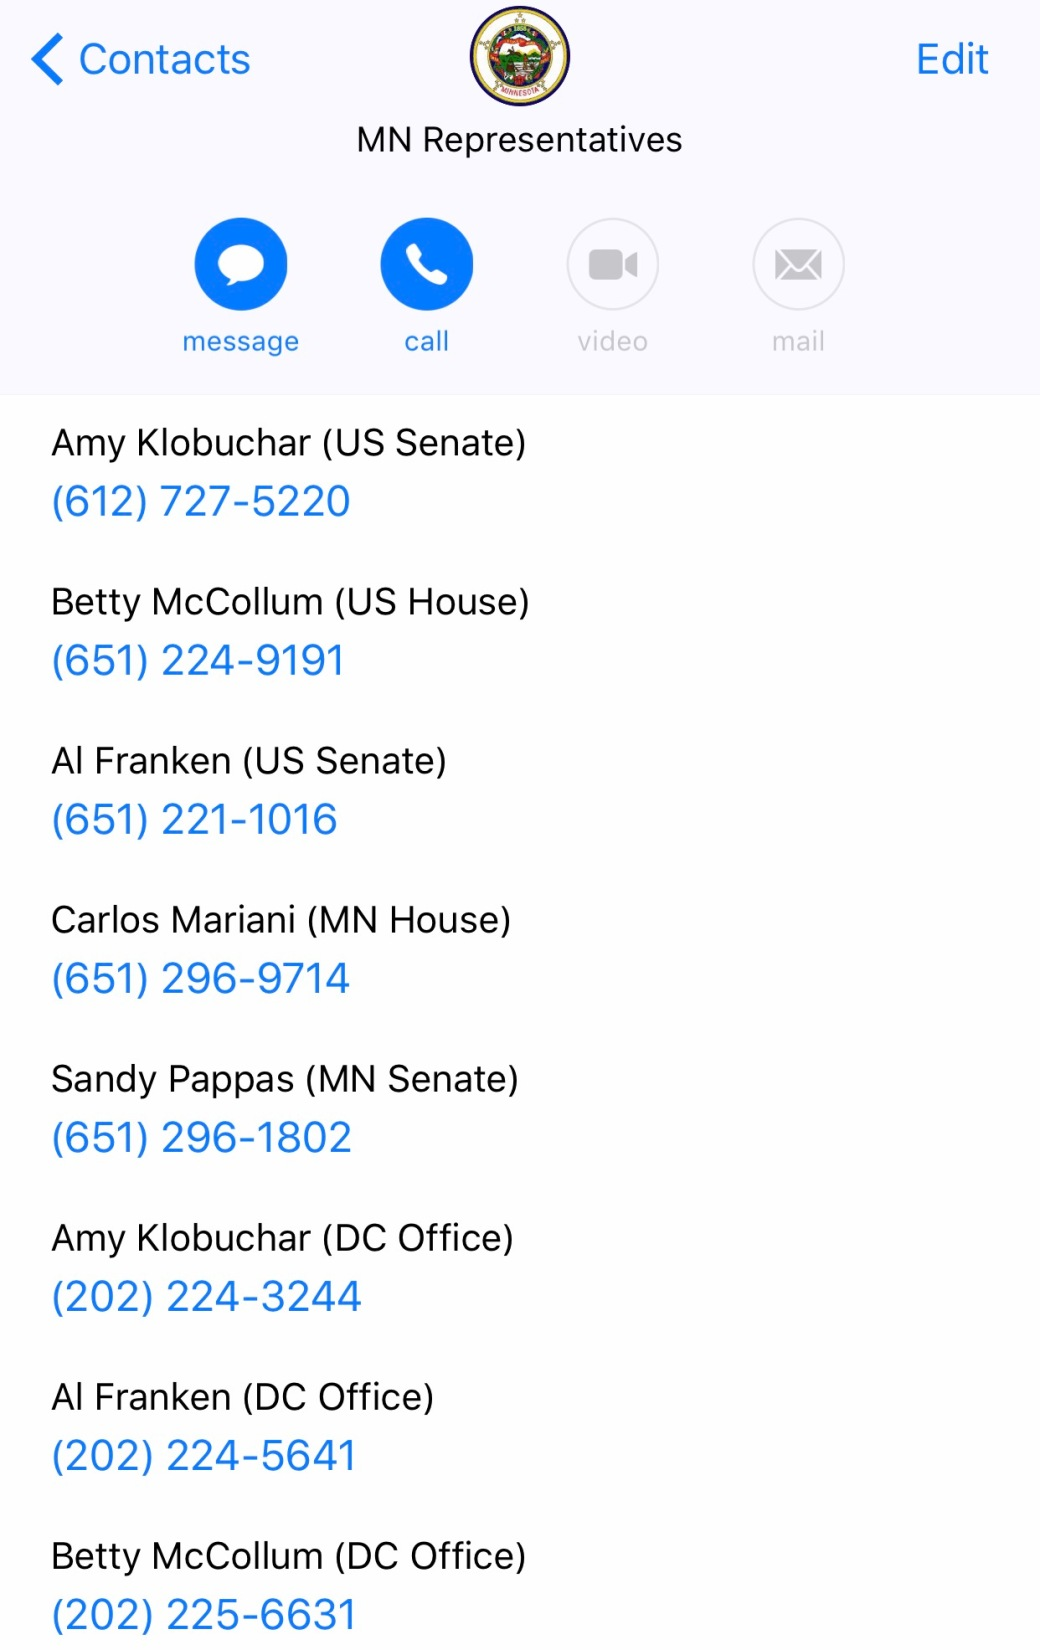 Timothy Pate How to Contact Your Representatives